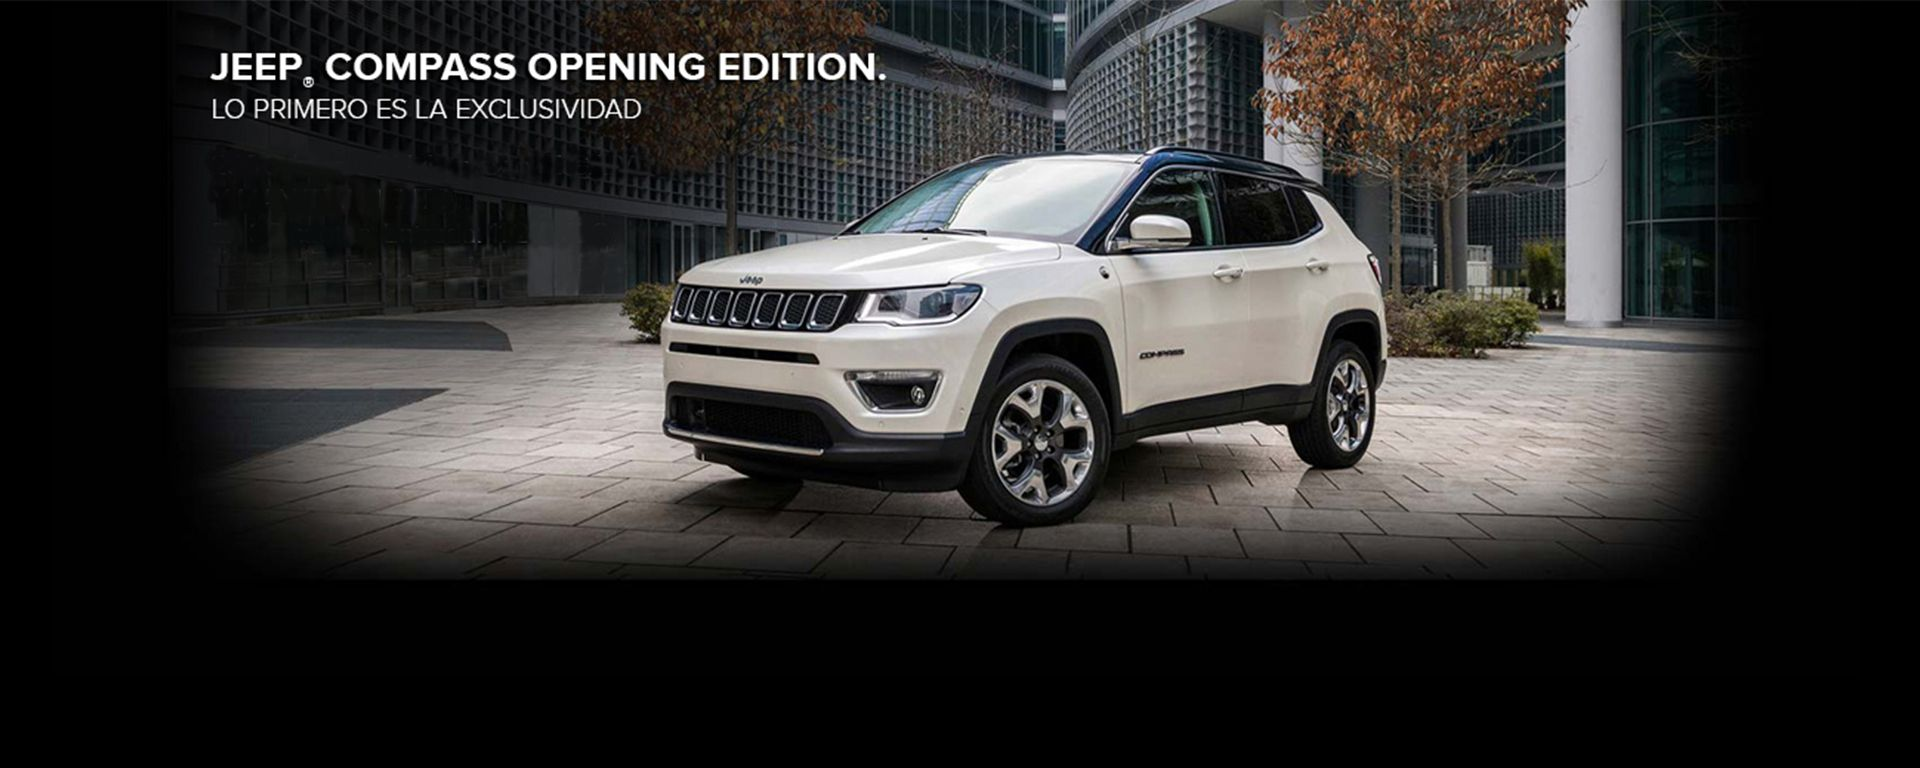 JEEP COMPAS OPENING EDITION